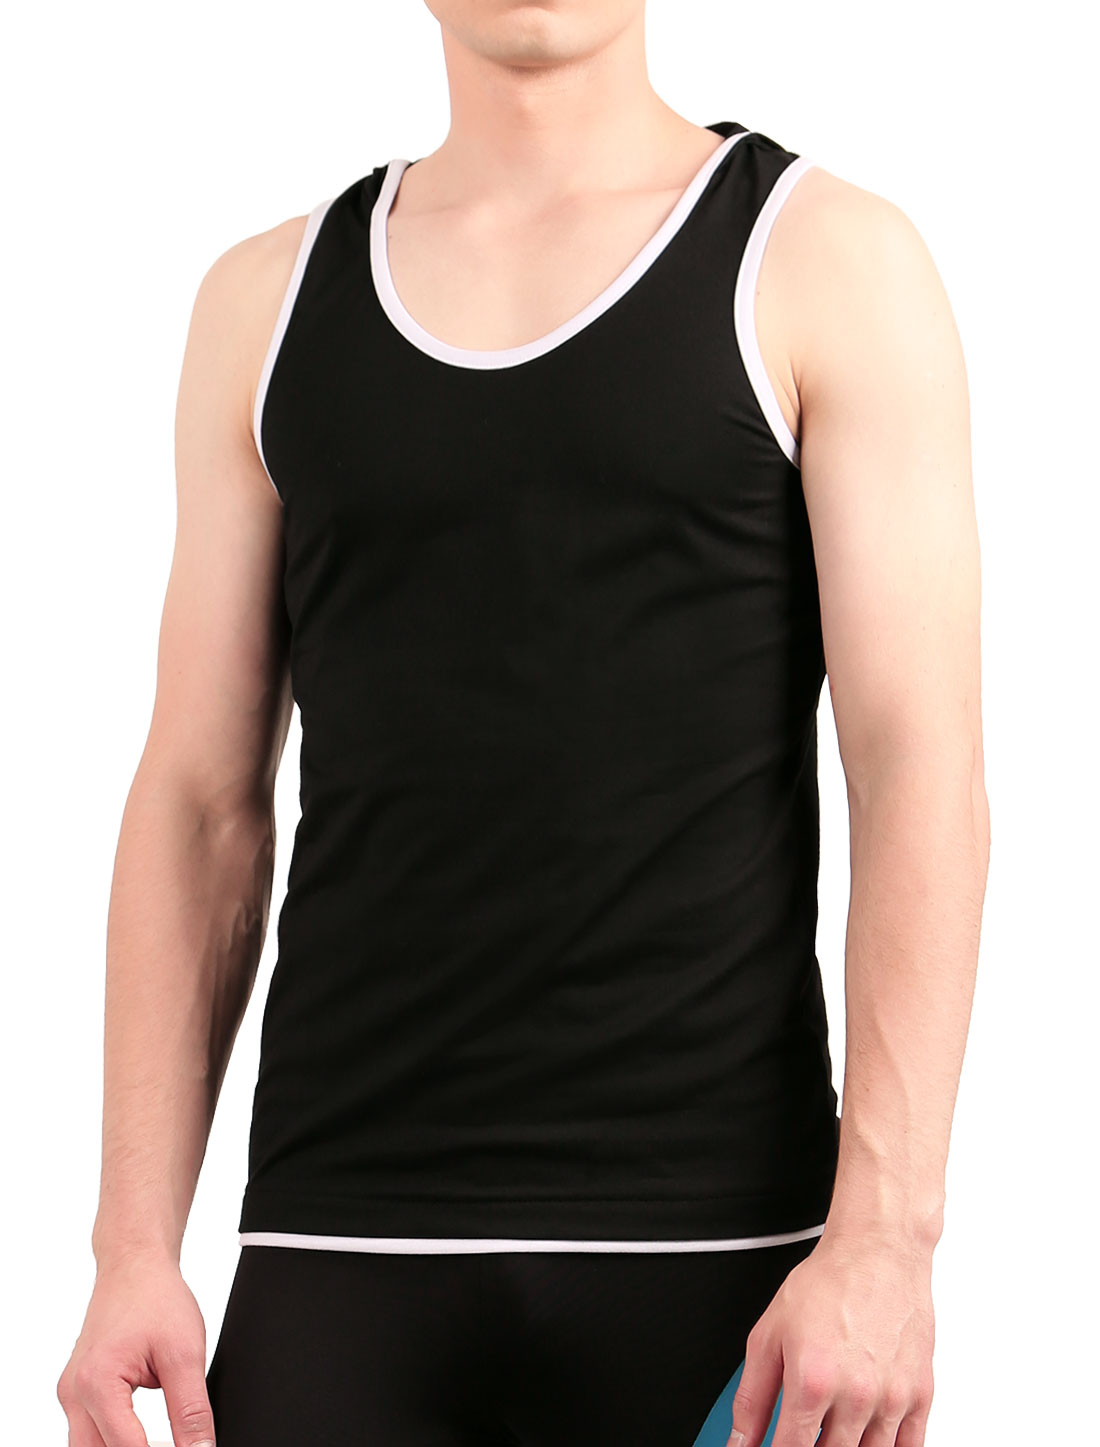 Men Stylish Black Racerback Piped Detail Sleeveless Hooded Tank Top XL